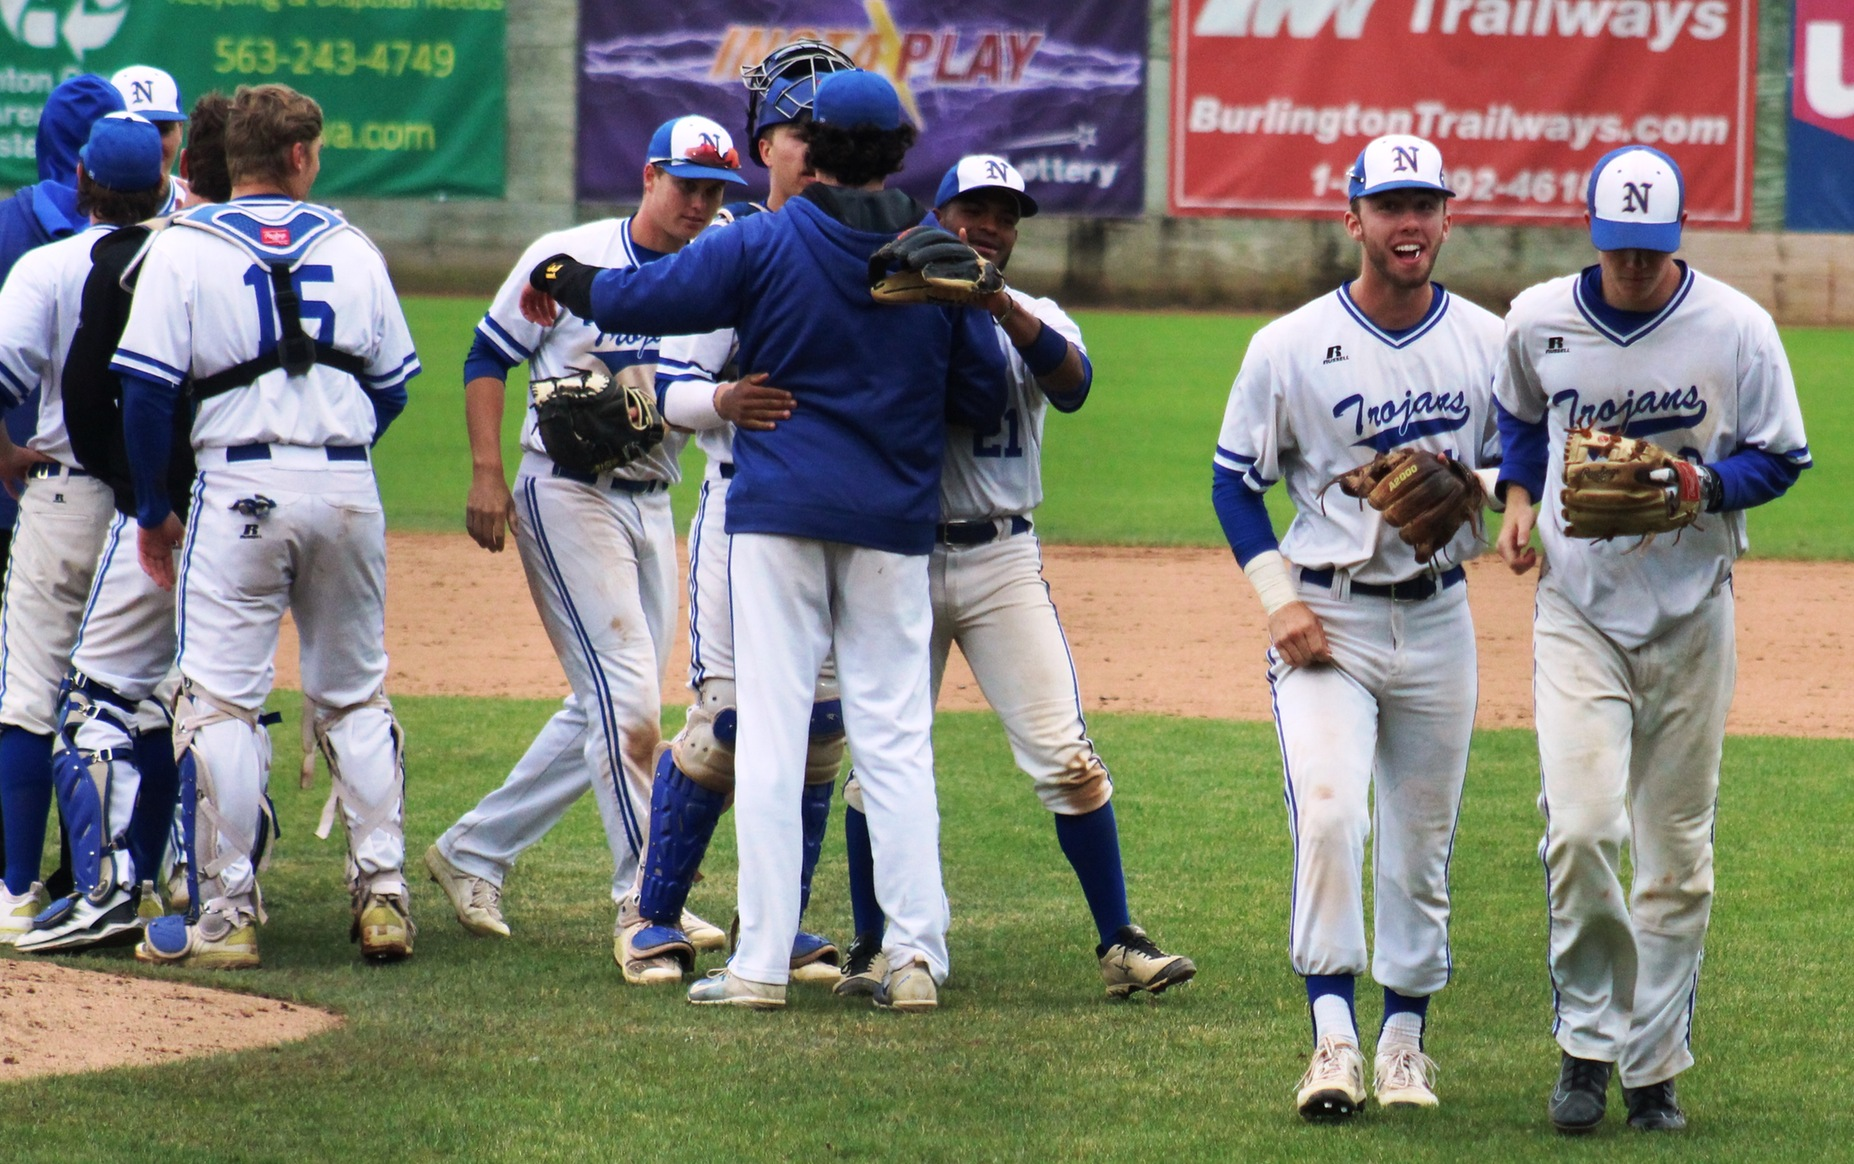 The NIACC baseball team received the 2018 American Baseball Coaches Association Team Academic Excellence Award.